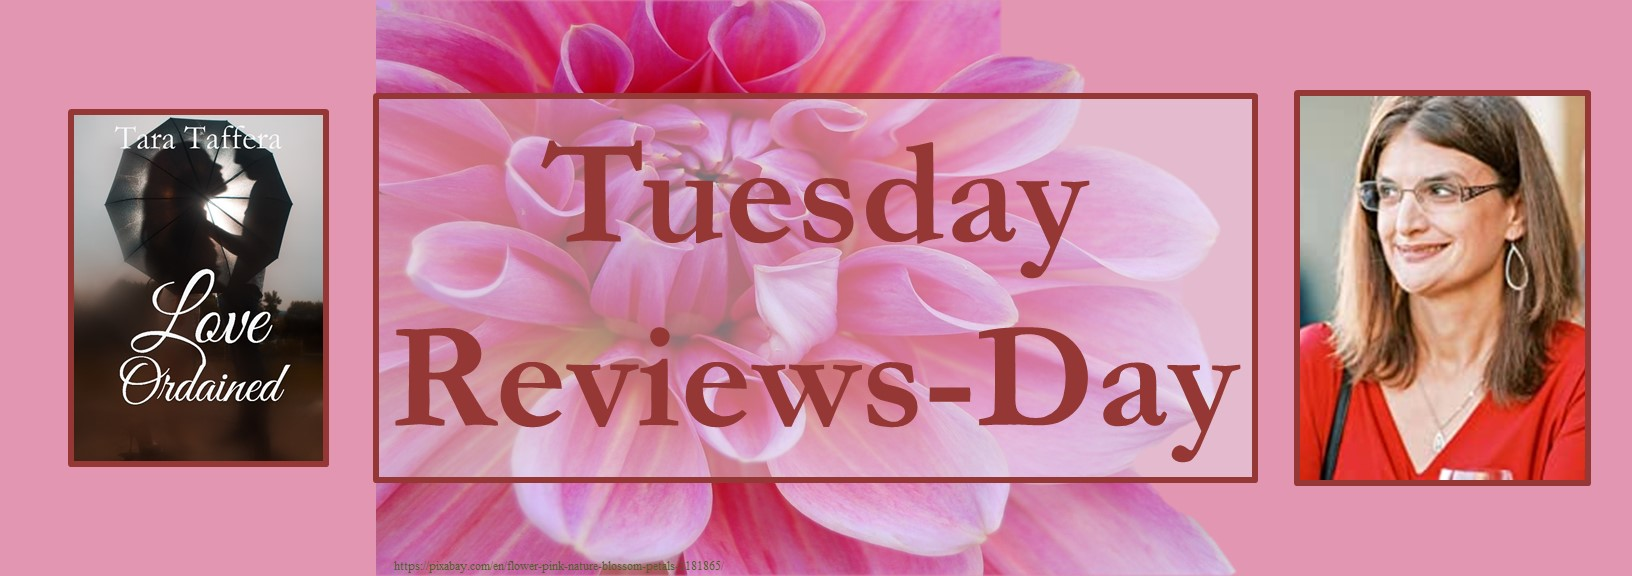 052521 - love ordained - tuesday reviews day banner